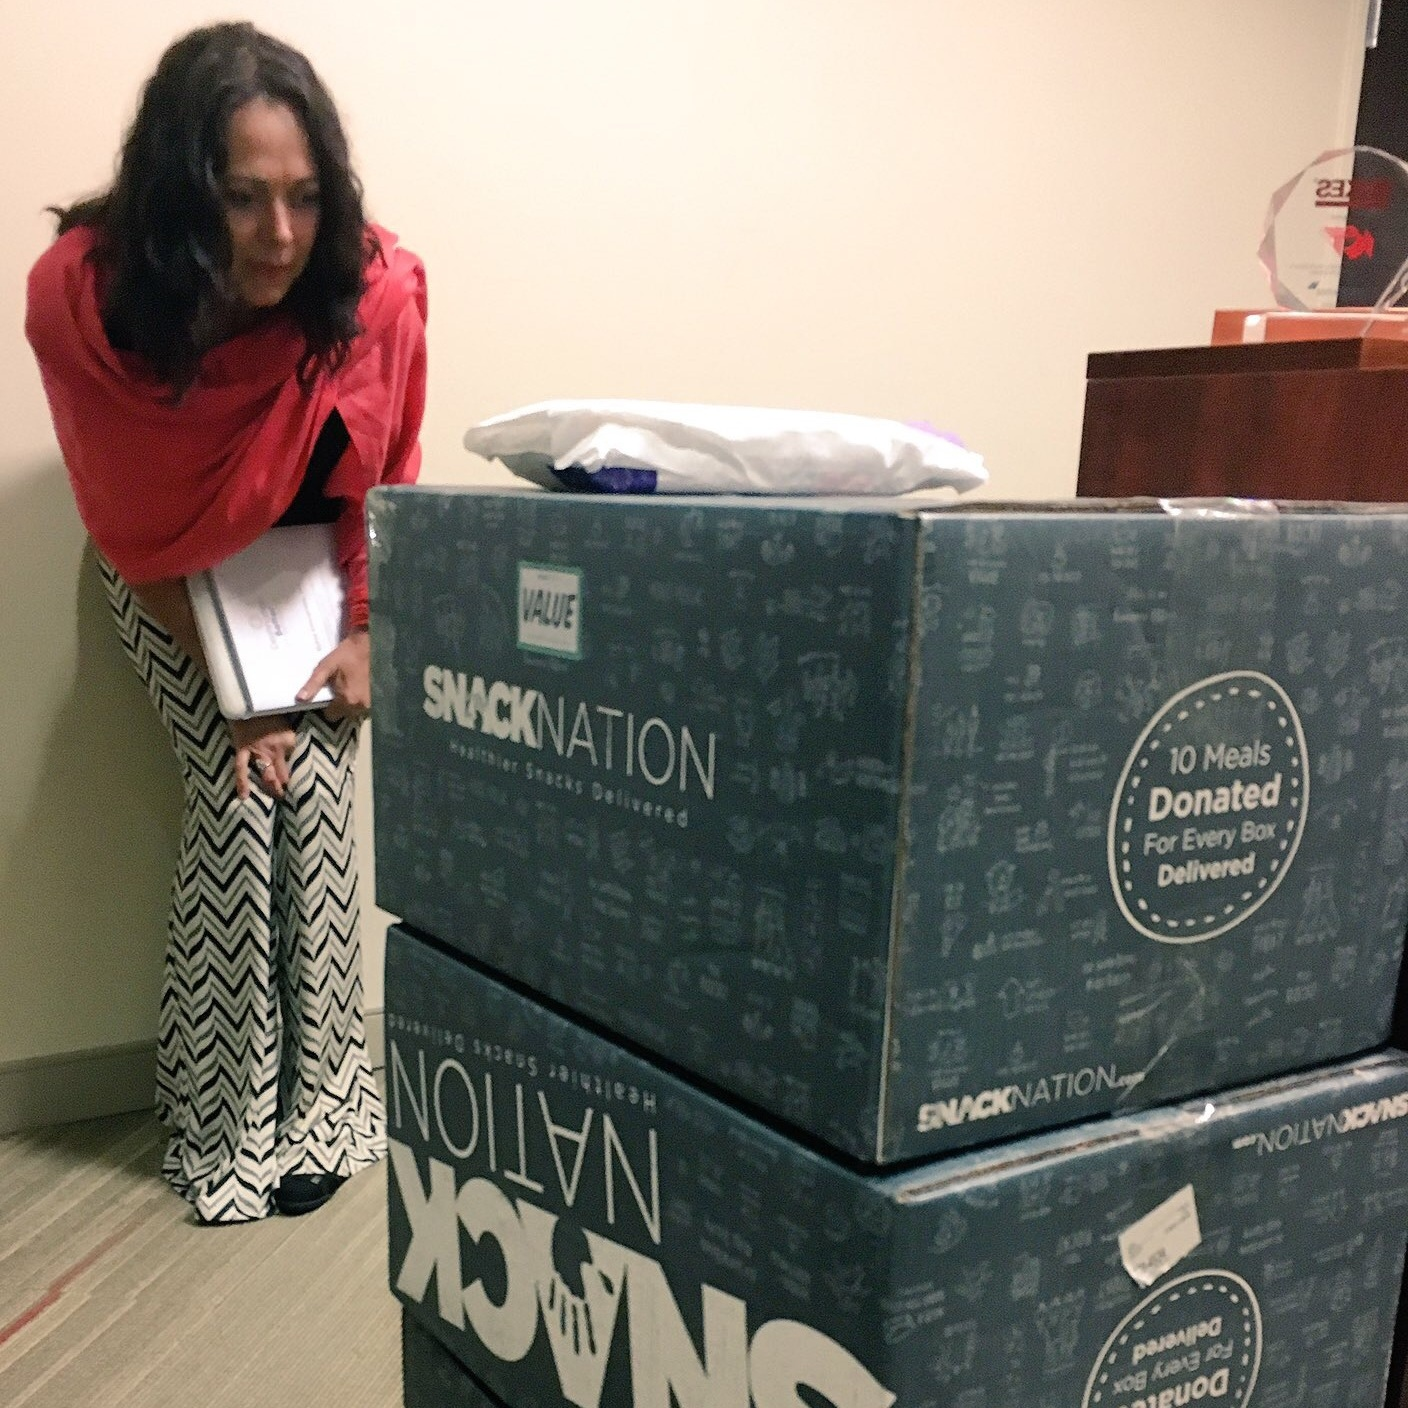 Destination Better's janet craig checking out a  SnackNation  delivery, who donates 10 meals for every box delivered, in a company headquarters, Tampa Florida